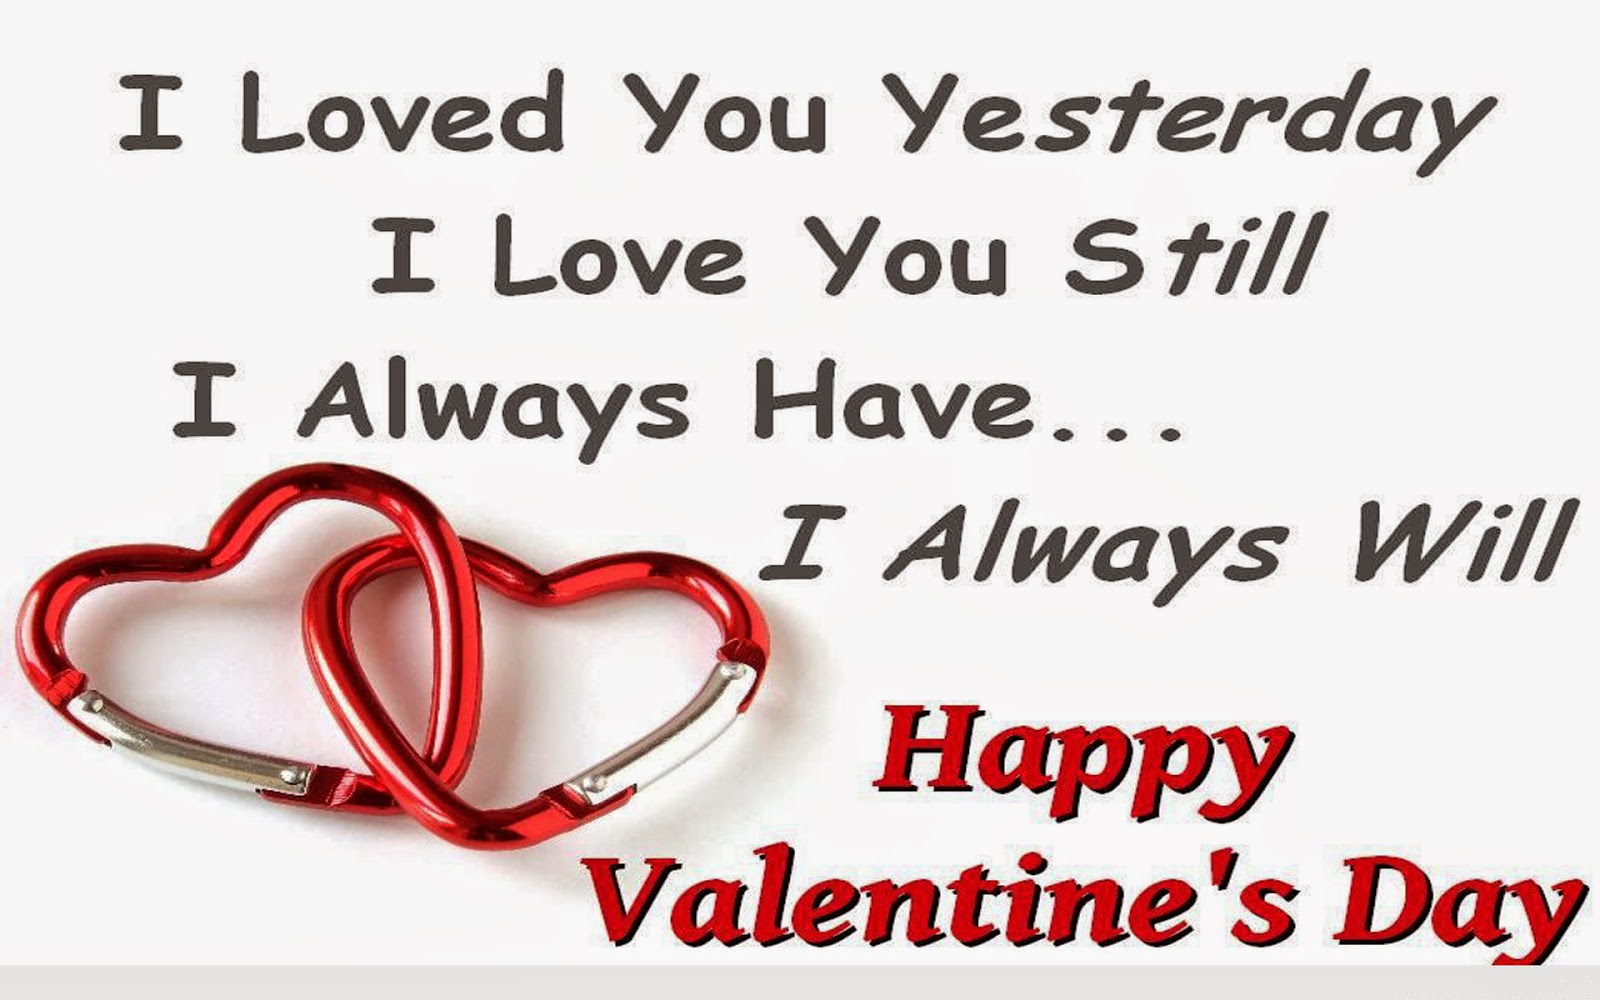 Loved You Yesterday Love You Still Quote: Valentine Day Quotes For Boyfriend And Girlfriend